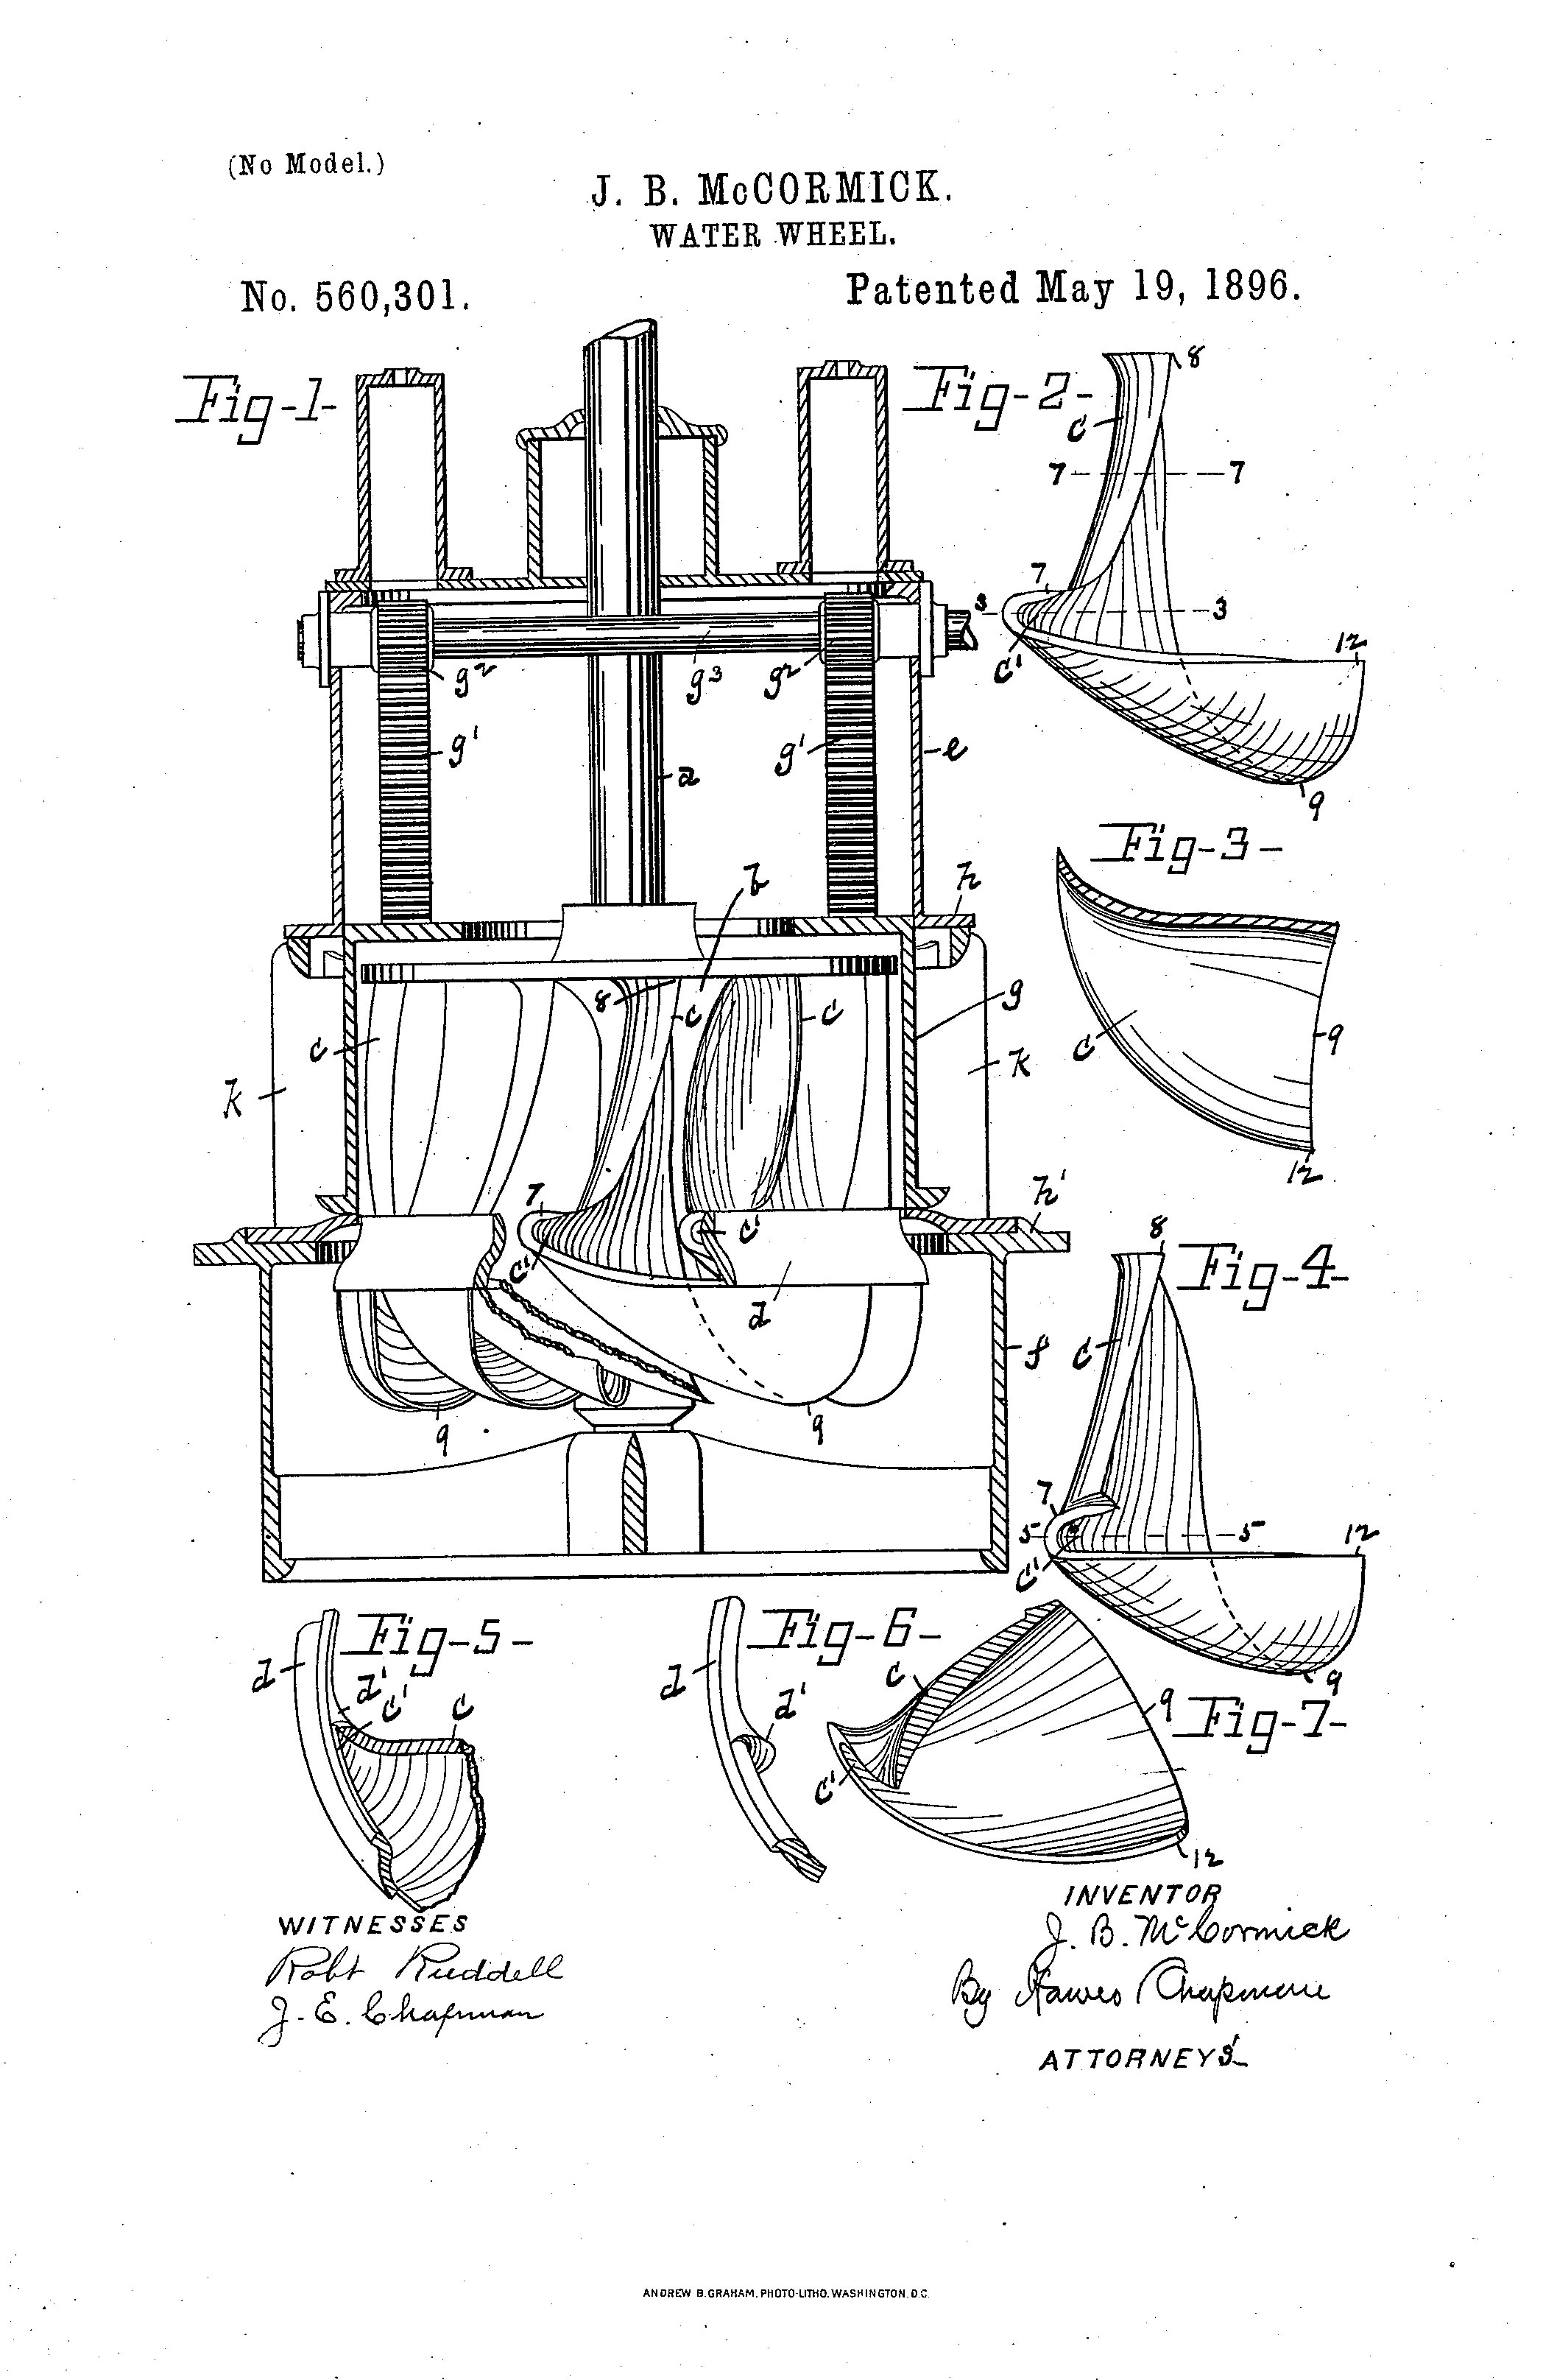 John B. McCormick's patent for the mixed flow water turbine